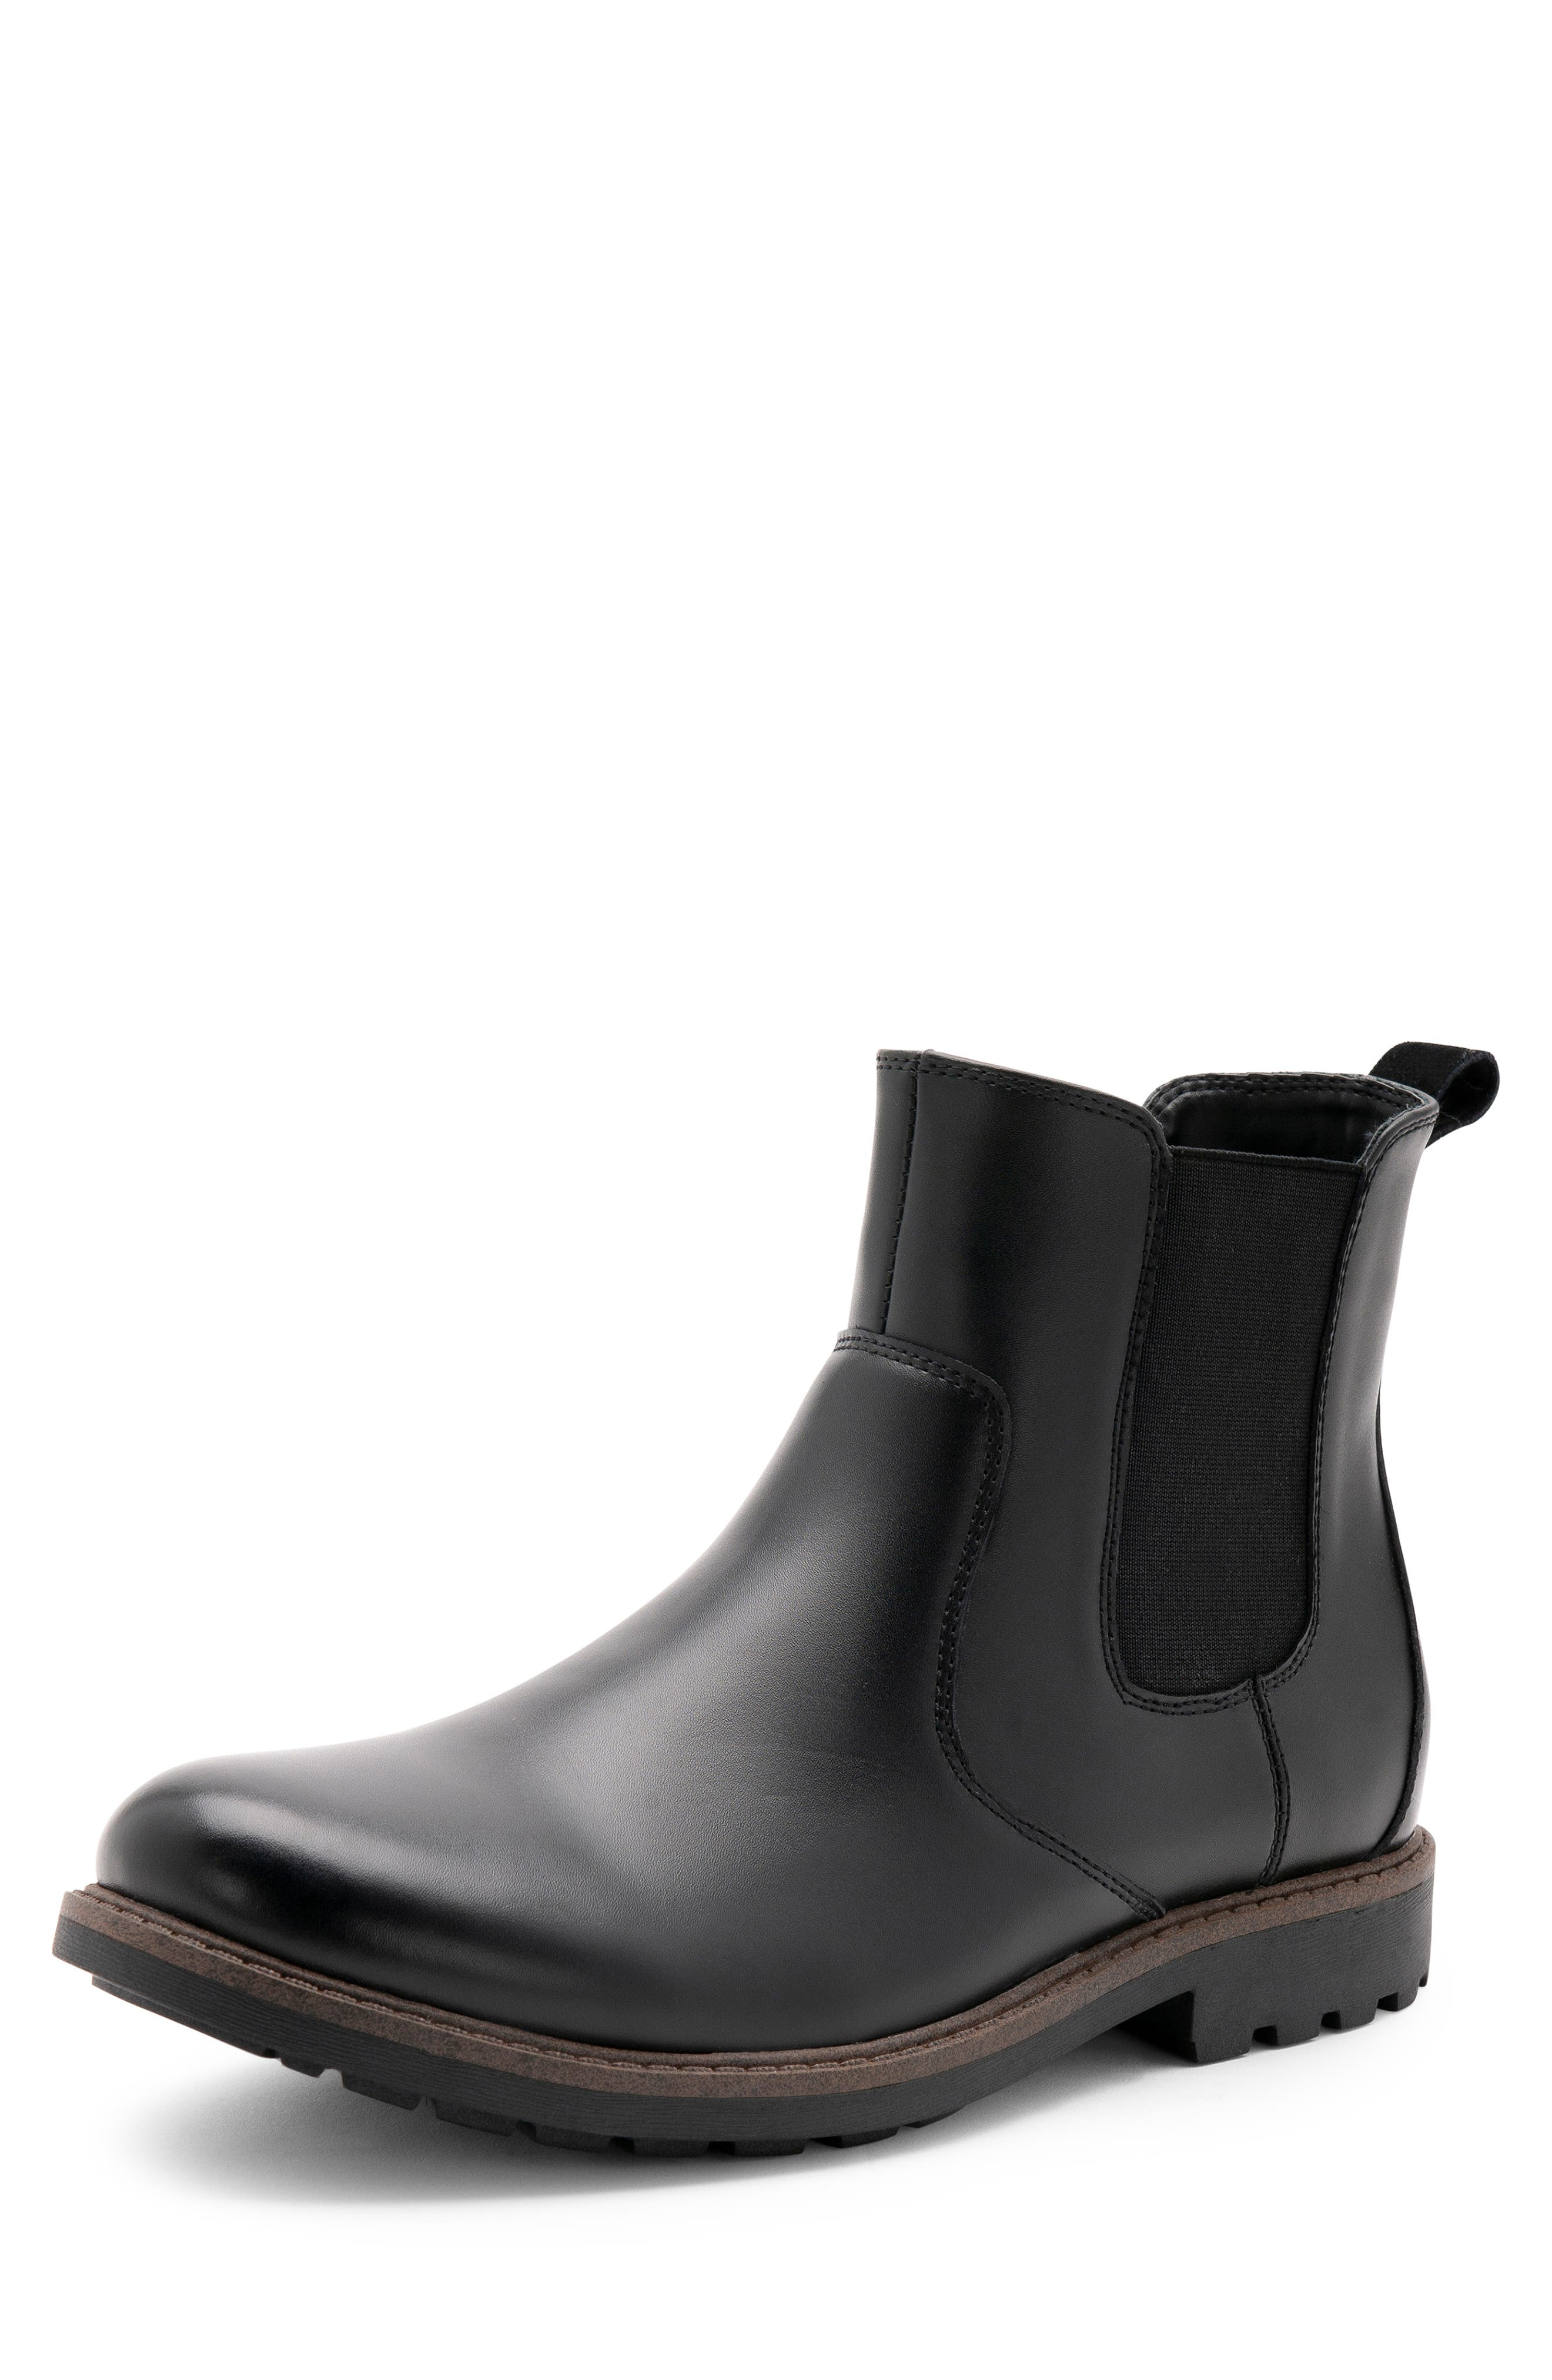 Shadow Waterproof Chelsea Boot,                             Alternate thumbnail 7, color,                             BLACK LEATHER